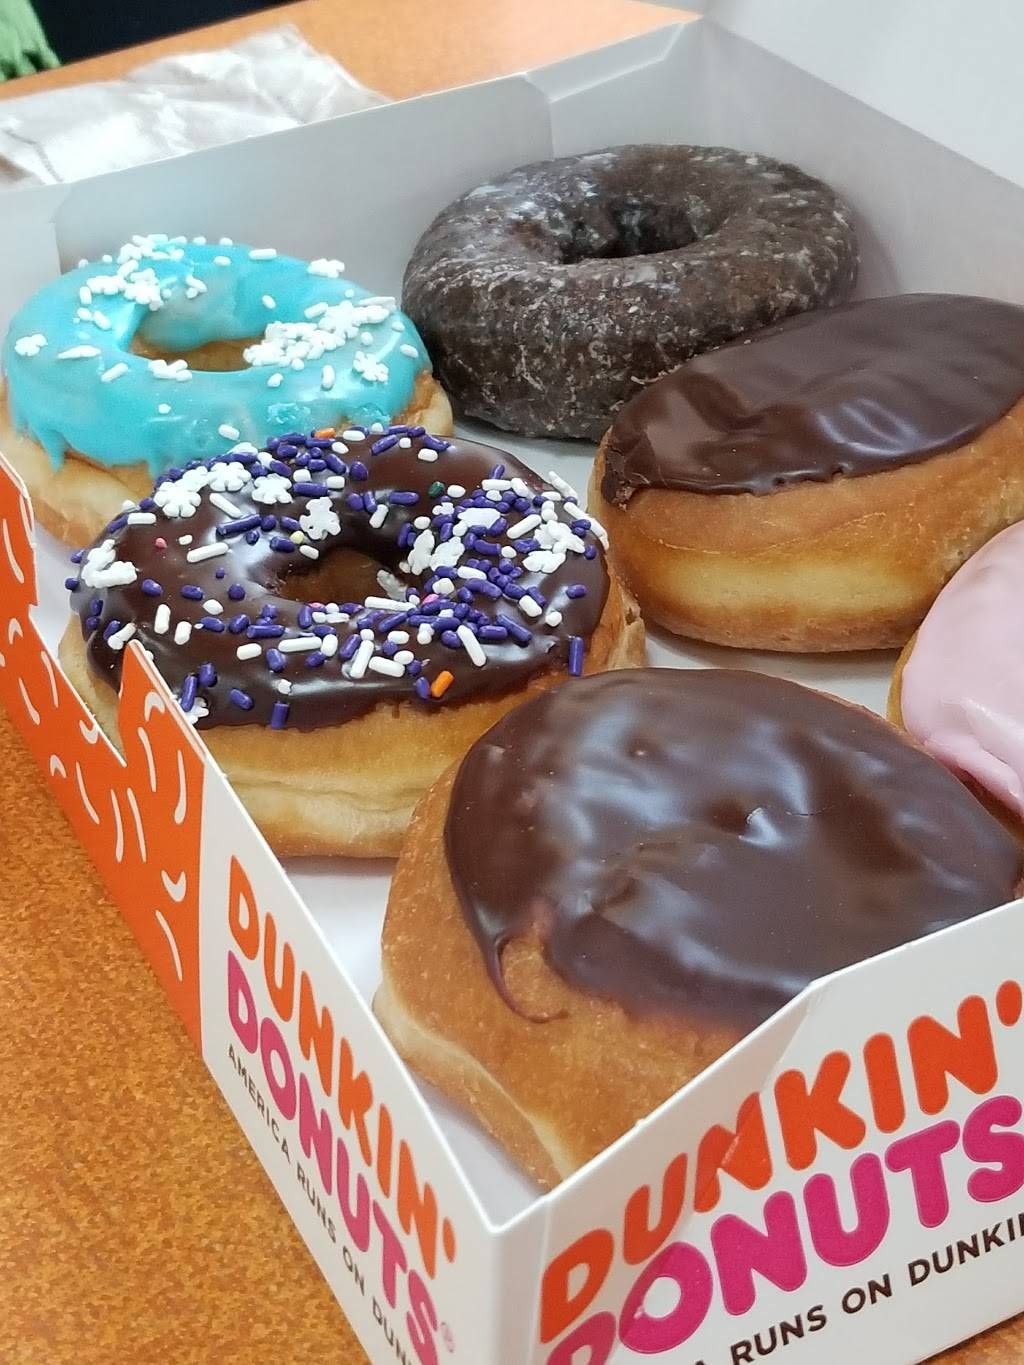 Dunkin Donuts | cafe | 8205 Snowden River Pkwy, Columbia, MD 21045, USA | 4104655882 OR +1 410-465-5882